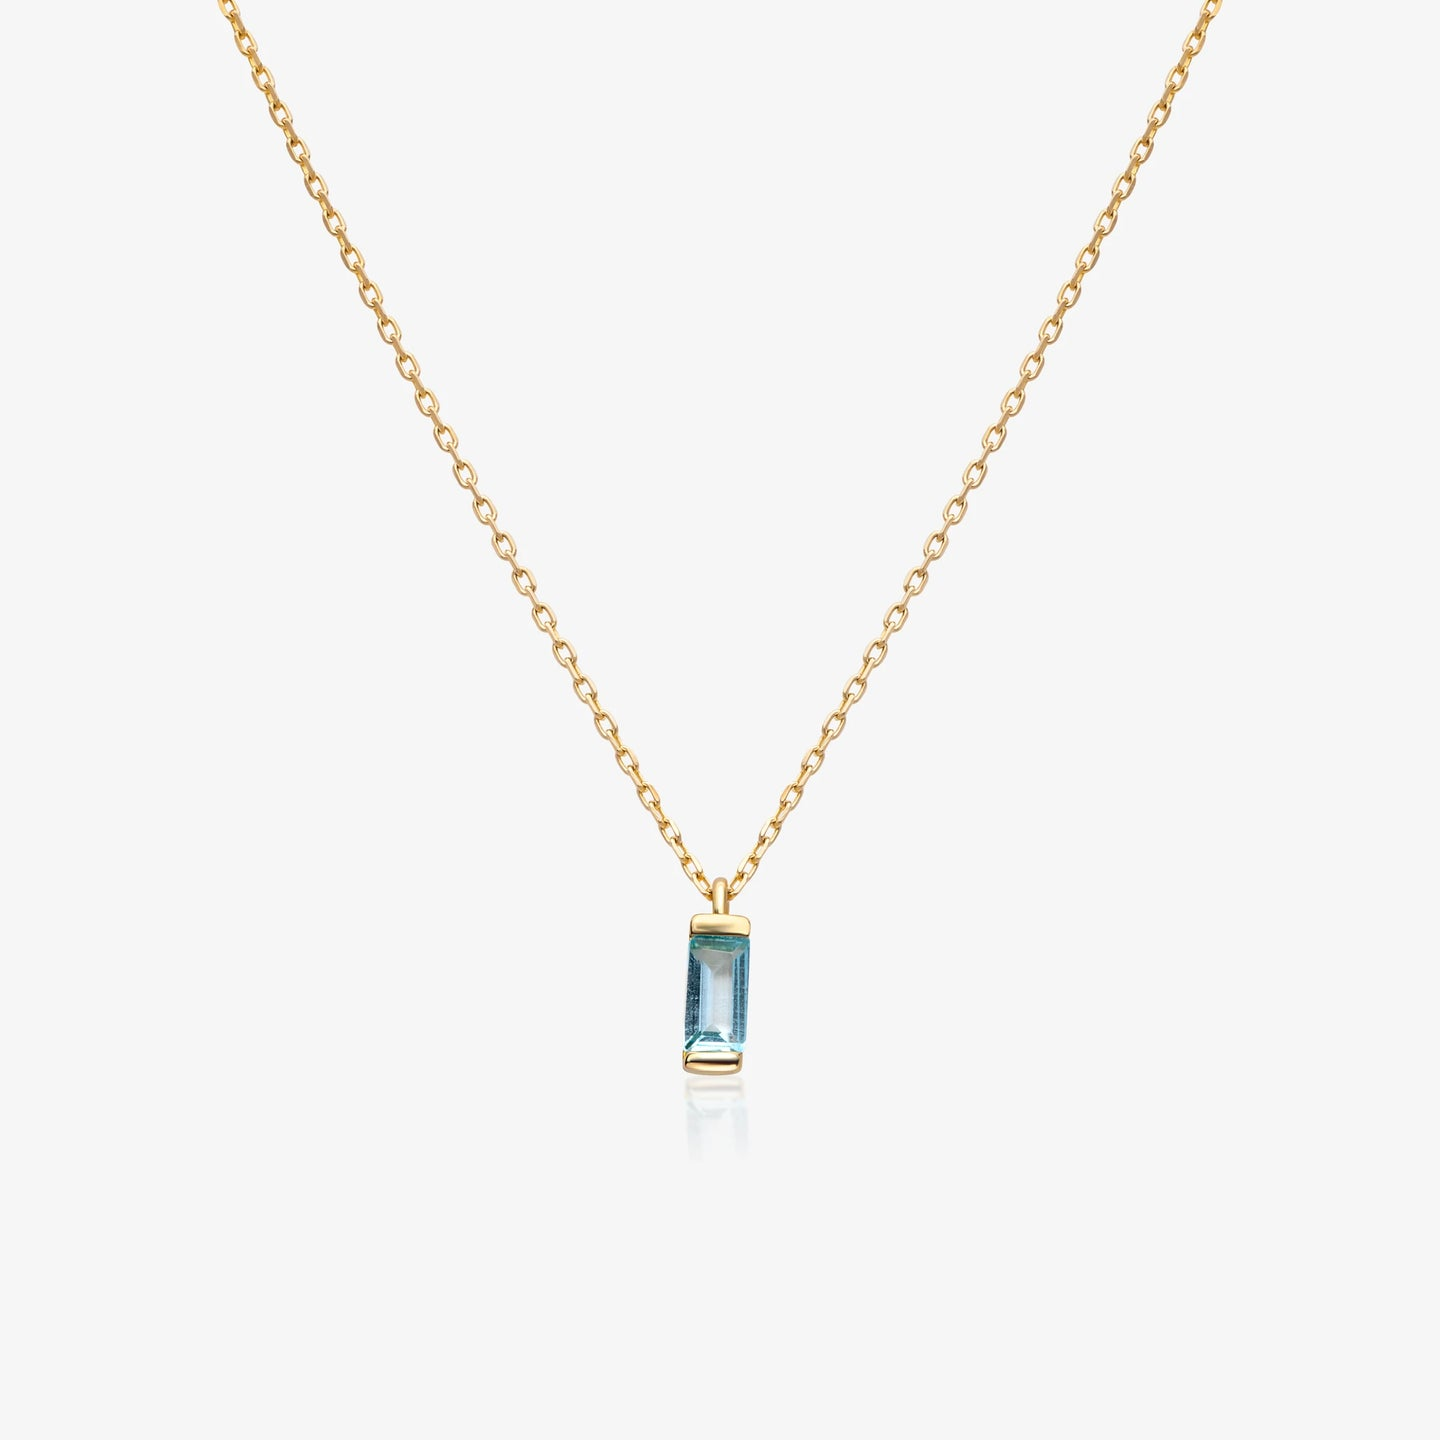 14K Gold Blue Baguette Pendant Necklace 16